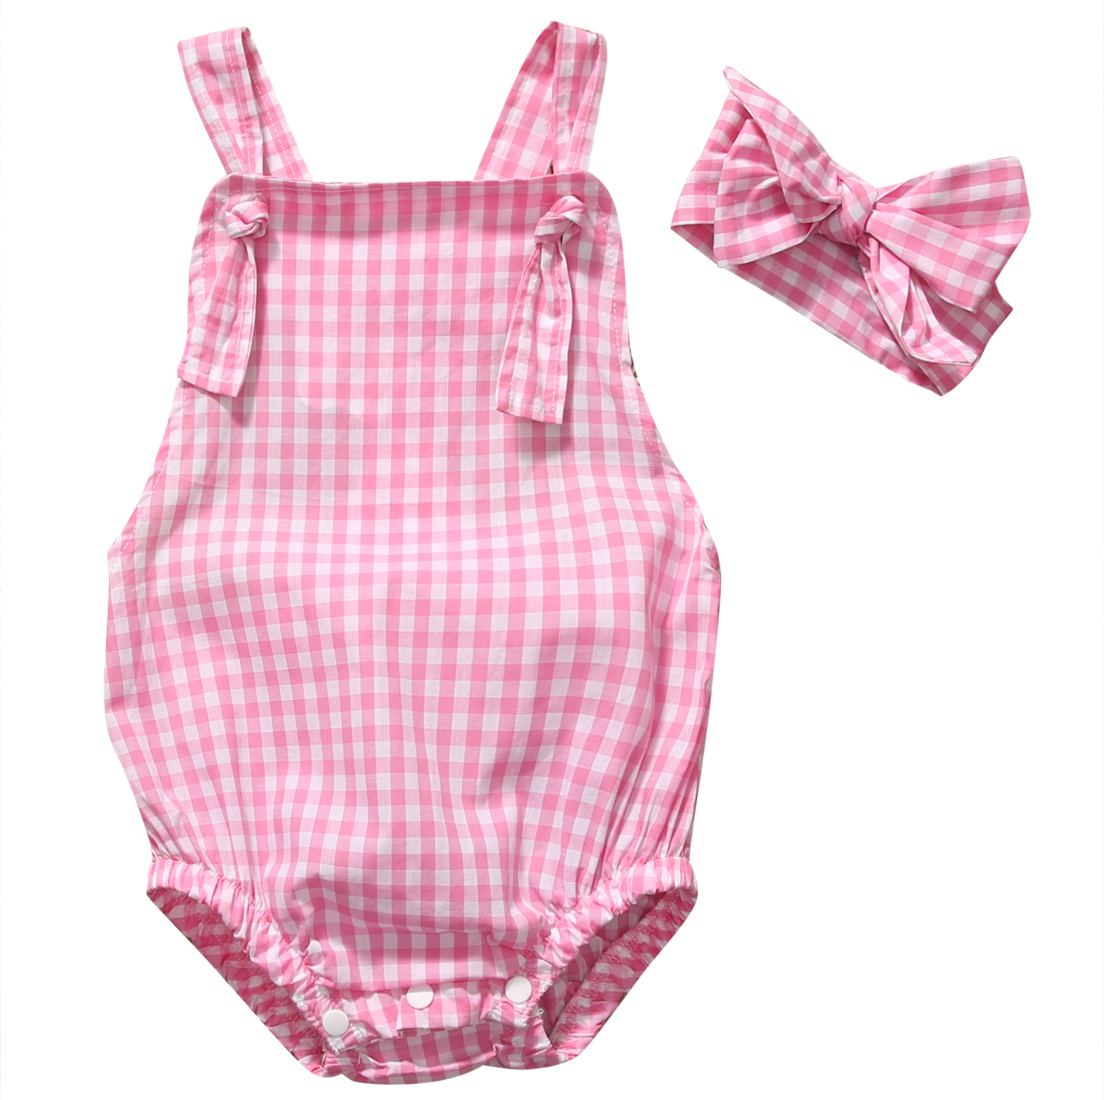 Newborn Infant Baby Girl Romper Pink Plaid Sleeveless Jumpsuit Summer Halter Baby Girl Clothes Outfits Summer Sunsuit 2pcs summer newborn infant baby girl romper short sleeve floral romper jumpsuit outfits sunsuit clothes